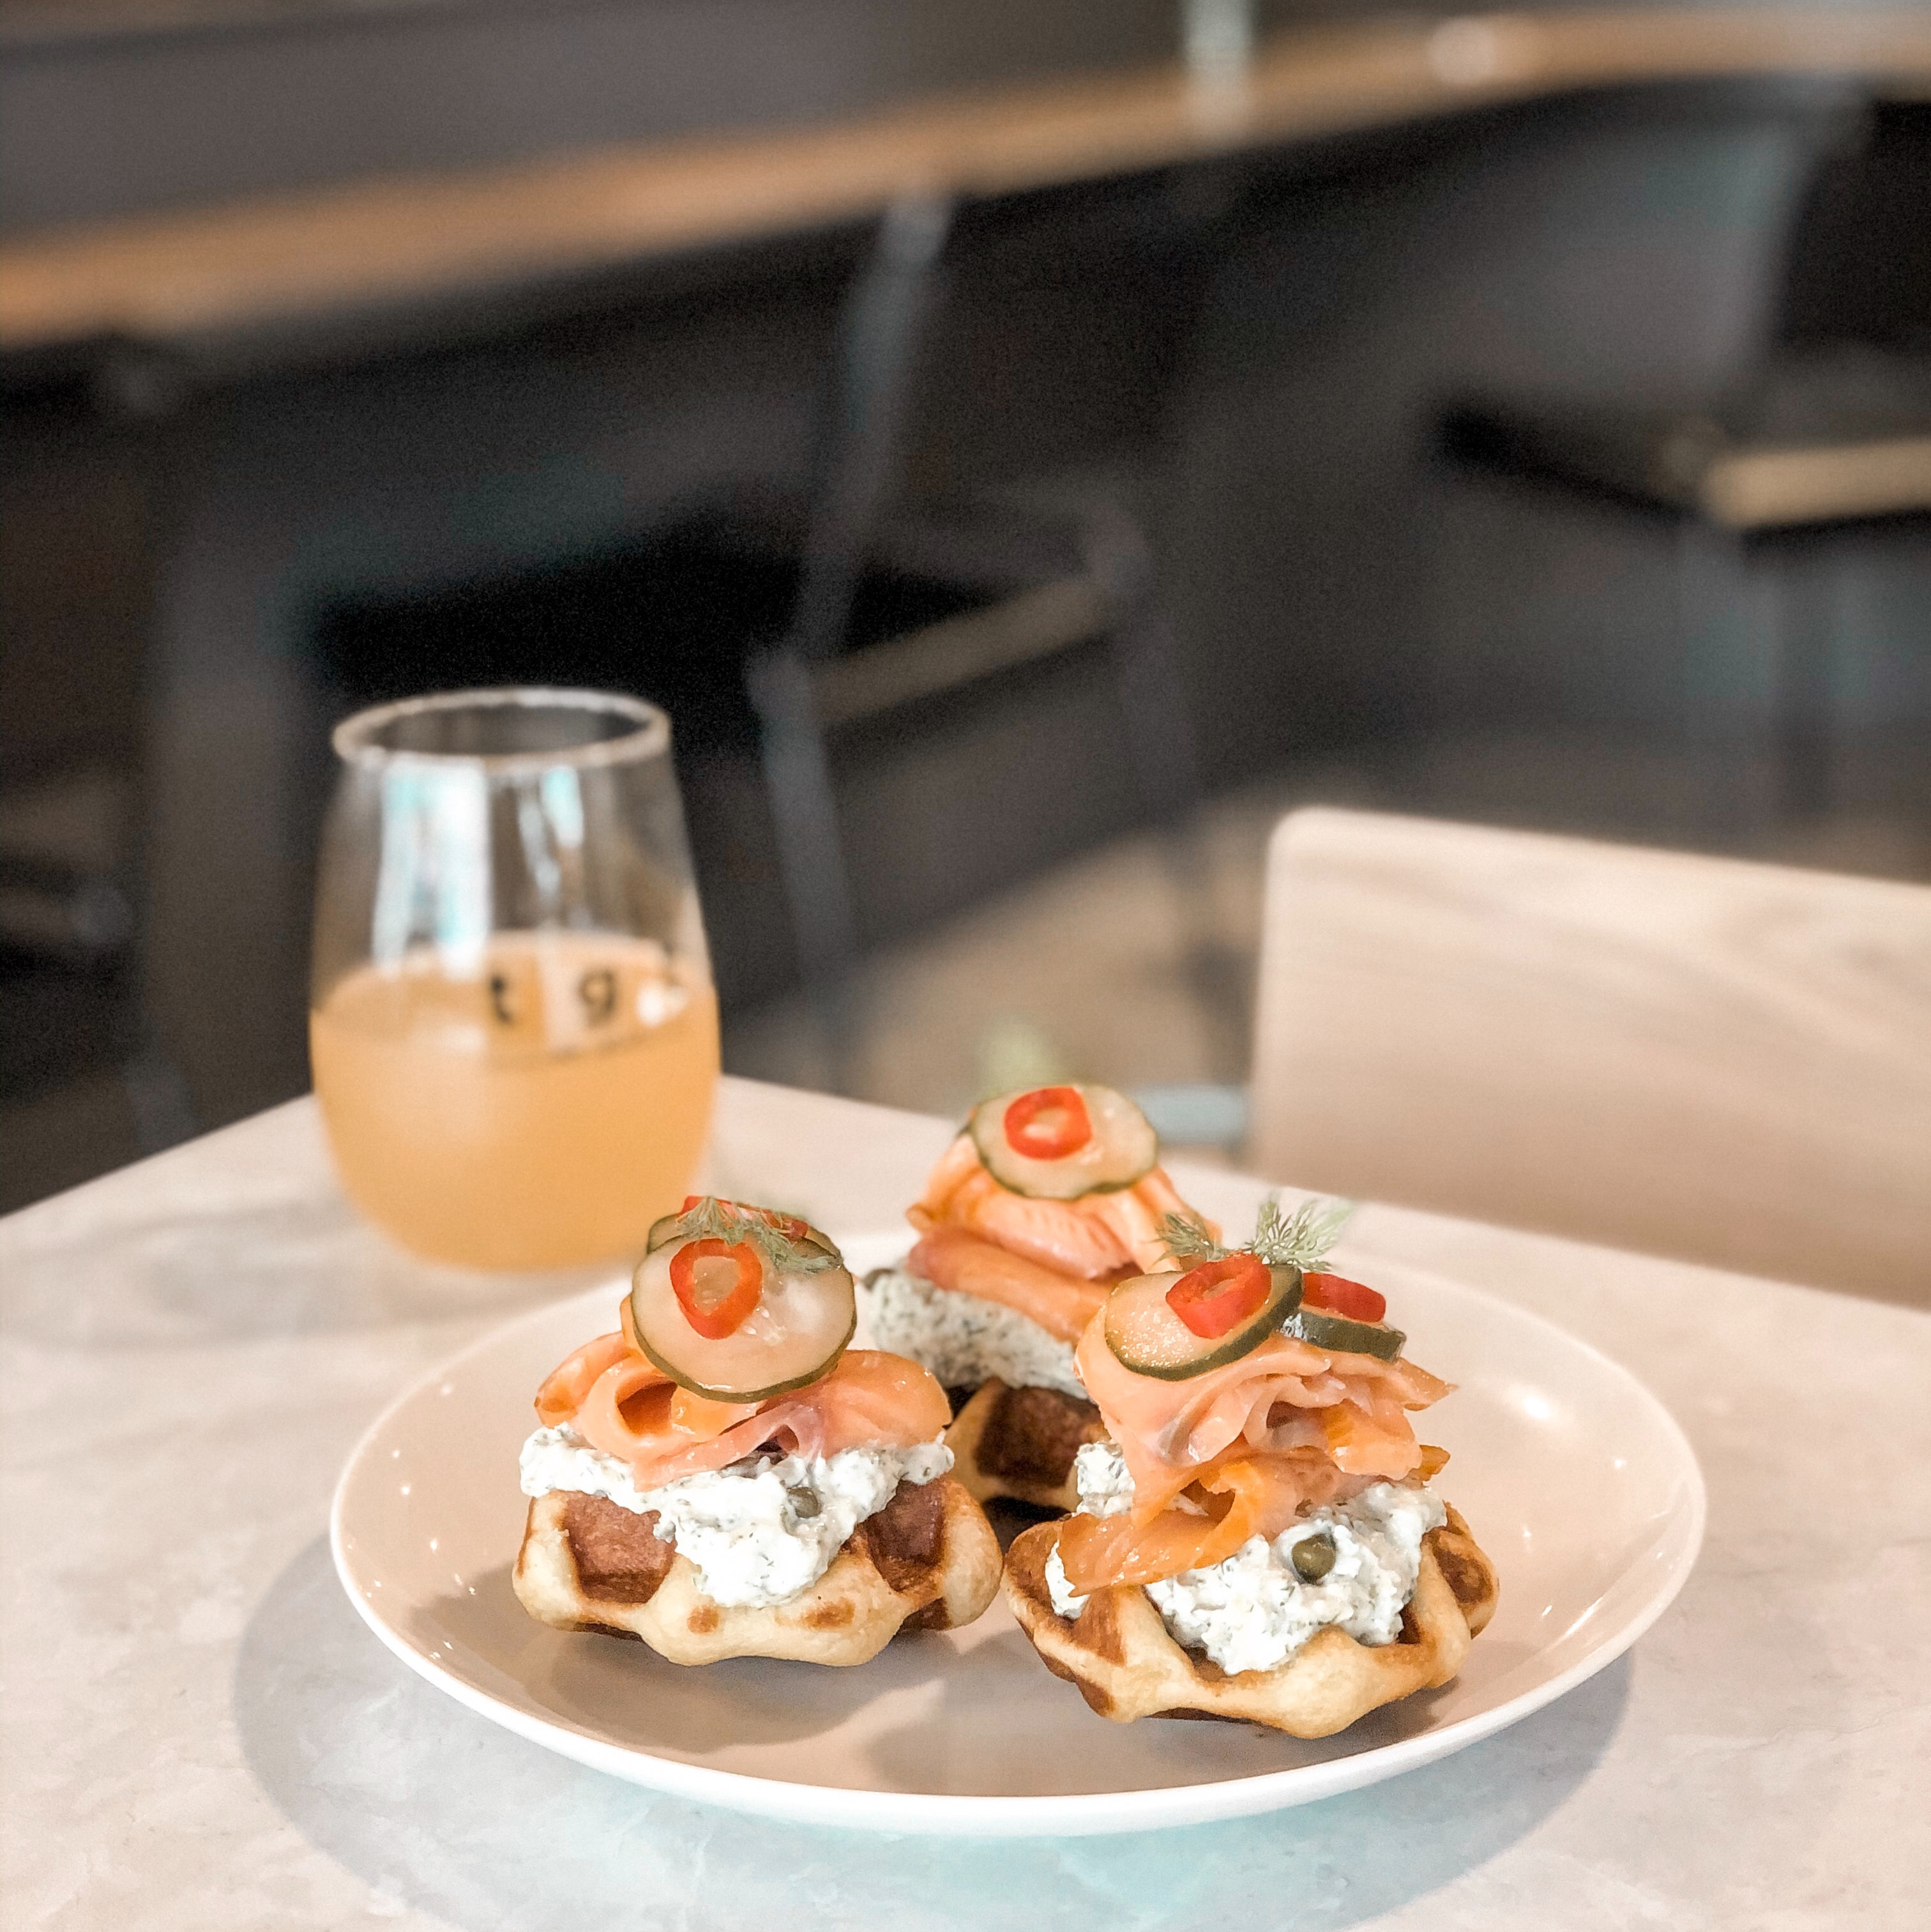 the-nat-channel-tgt-in-life-torpicana-avenue-cafe-salmon-waffle